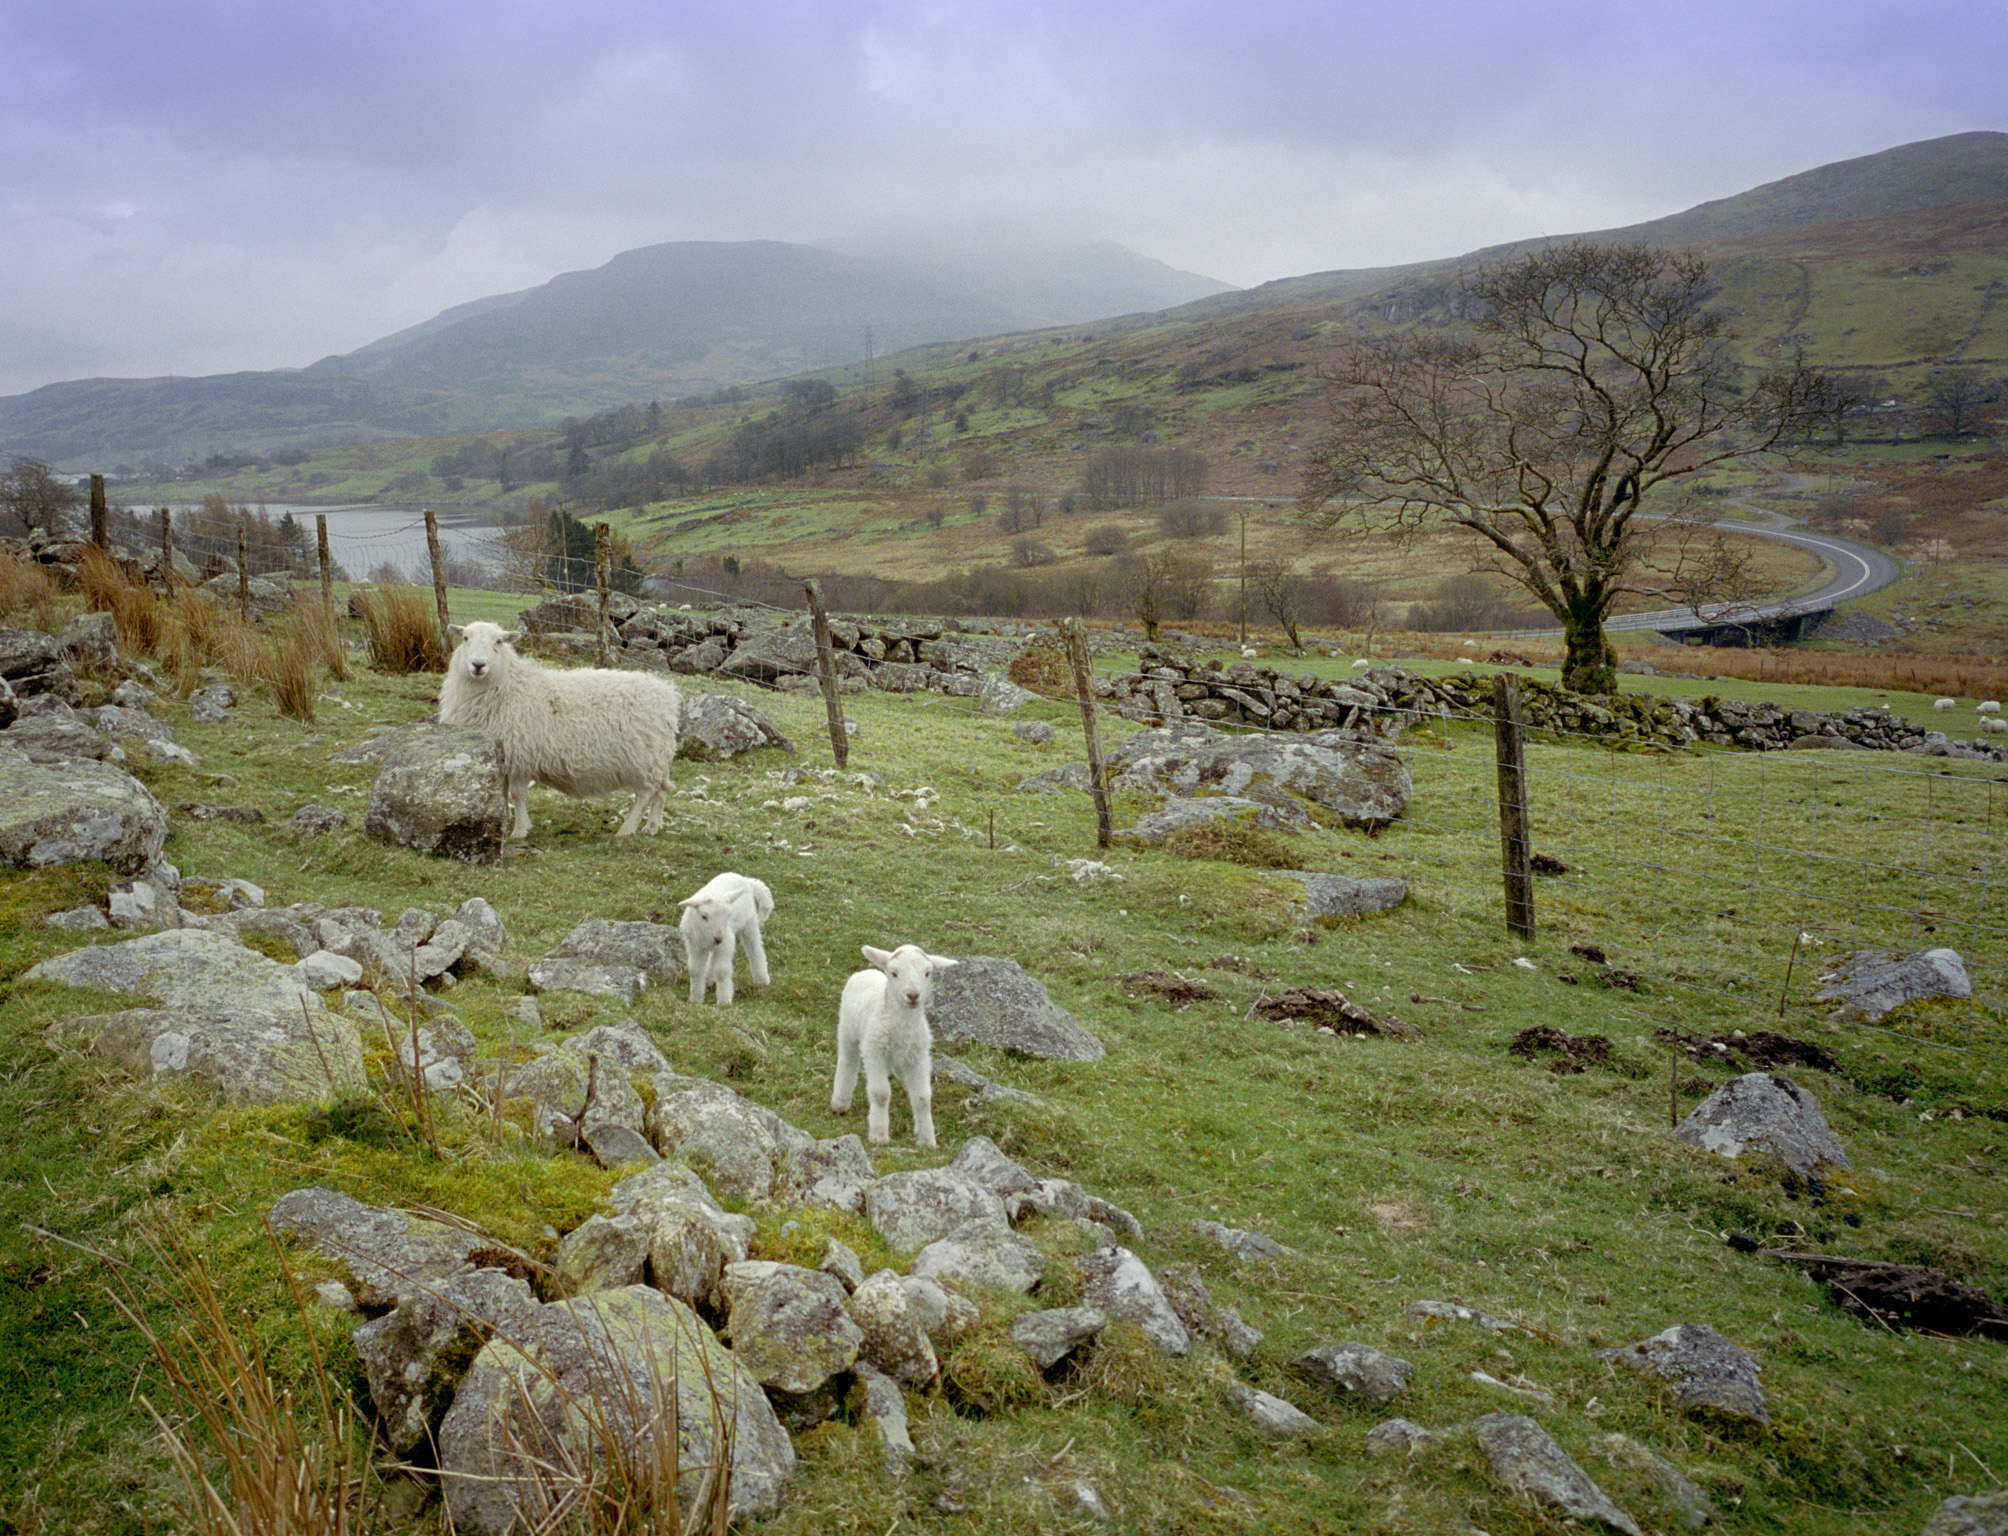 Welsh Sheep and Lambs on Hillside Farmland on Overcast Day